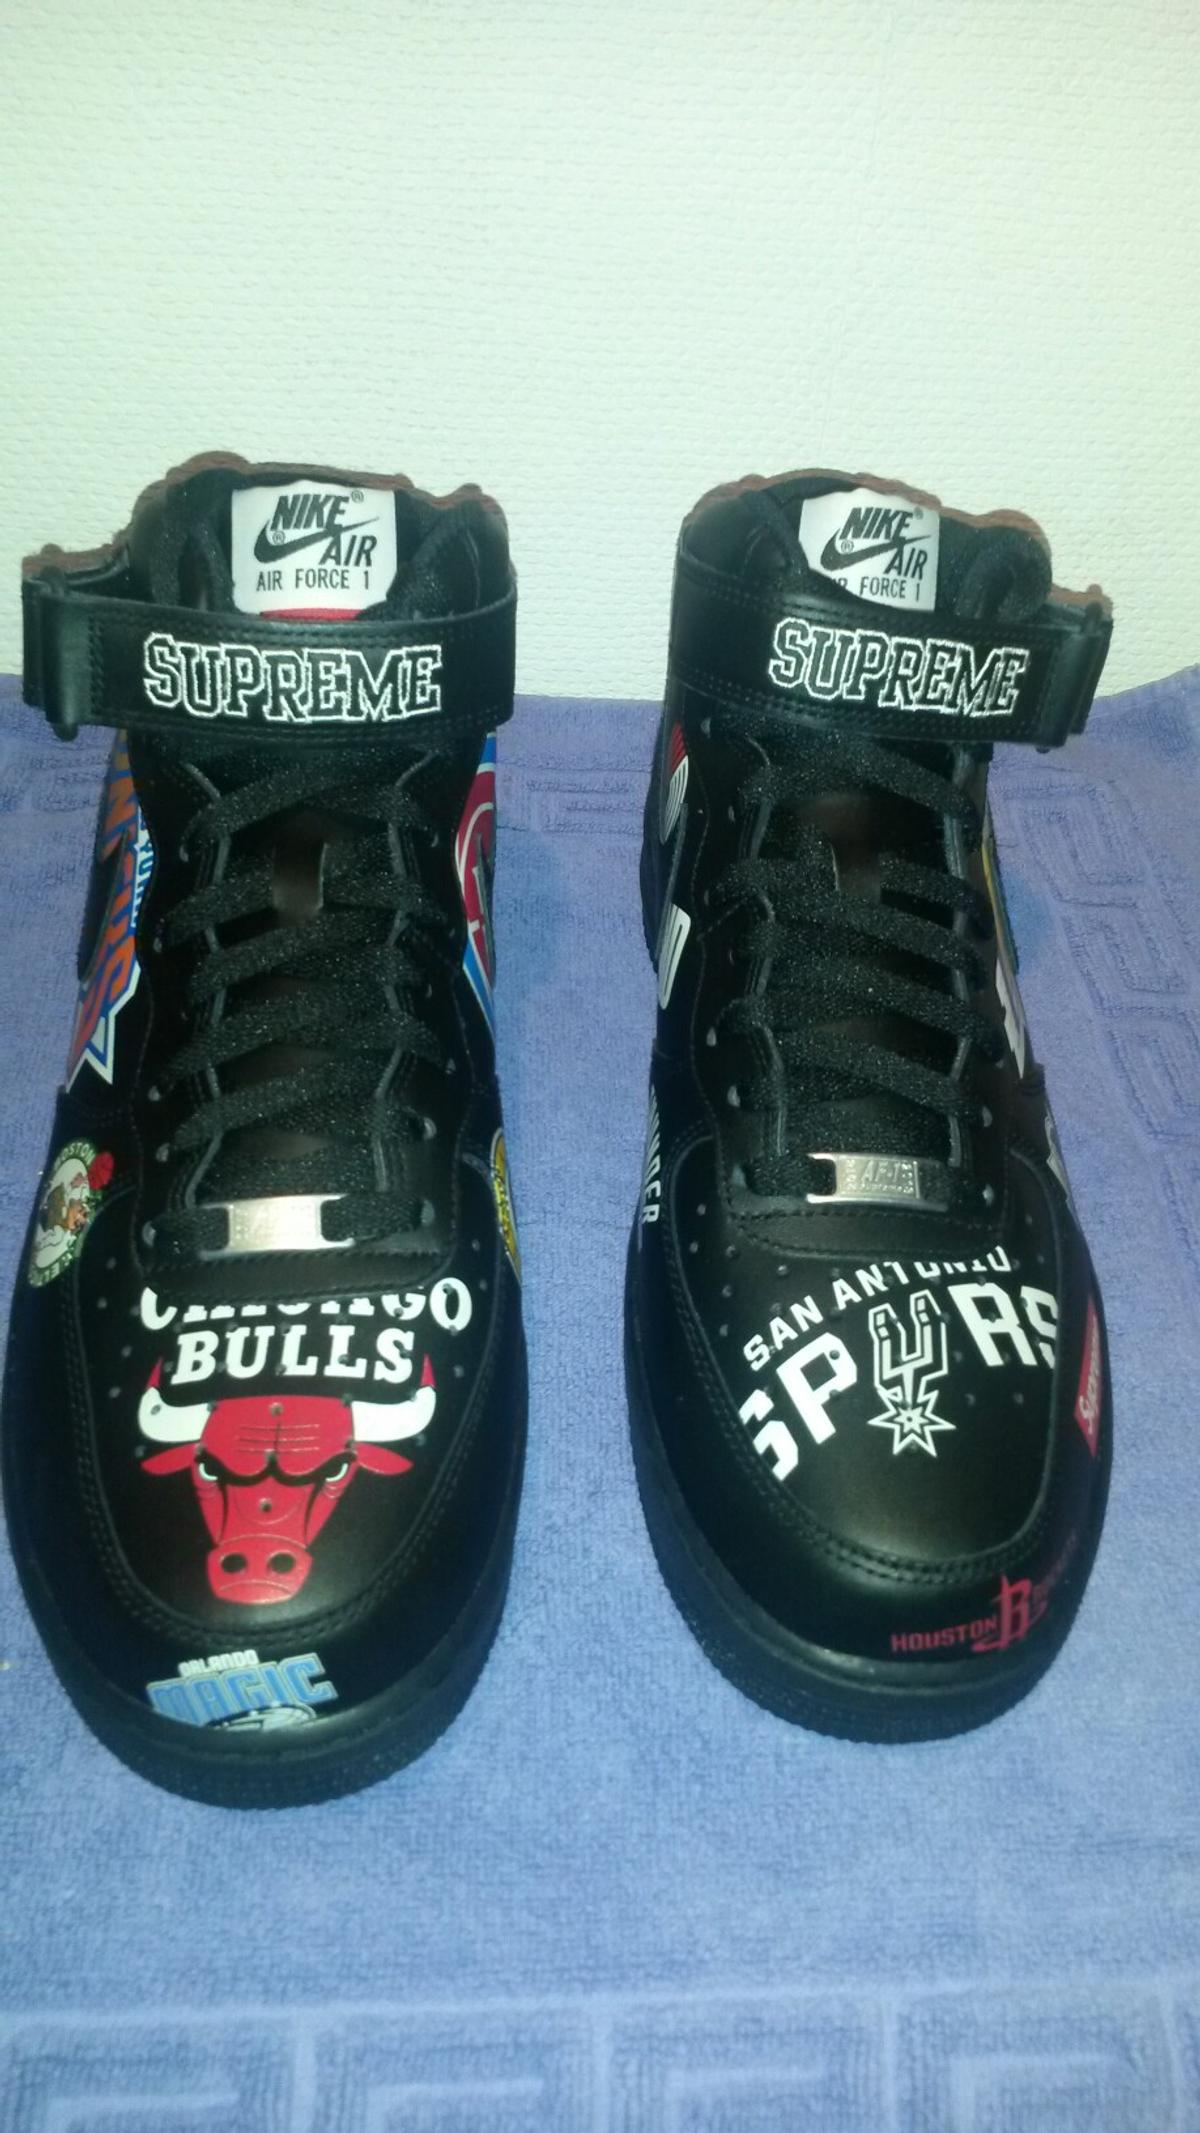 Nike x Supreme Air Force 1 Mid NBA Neu 43 9,5 in 80335 München for ...